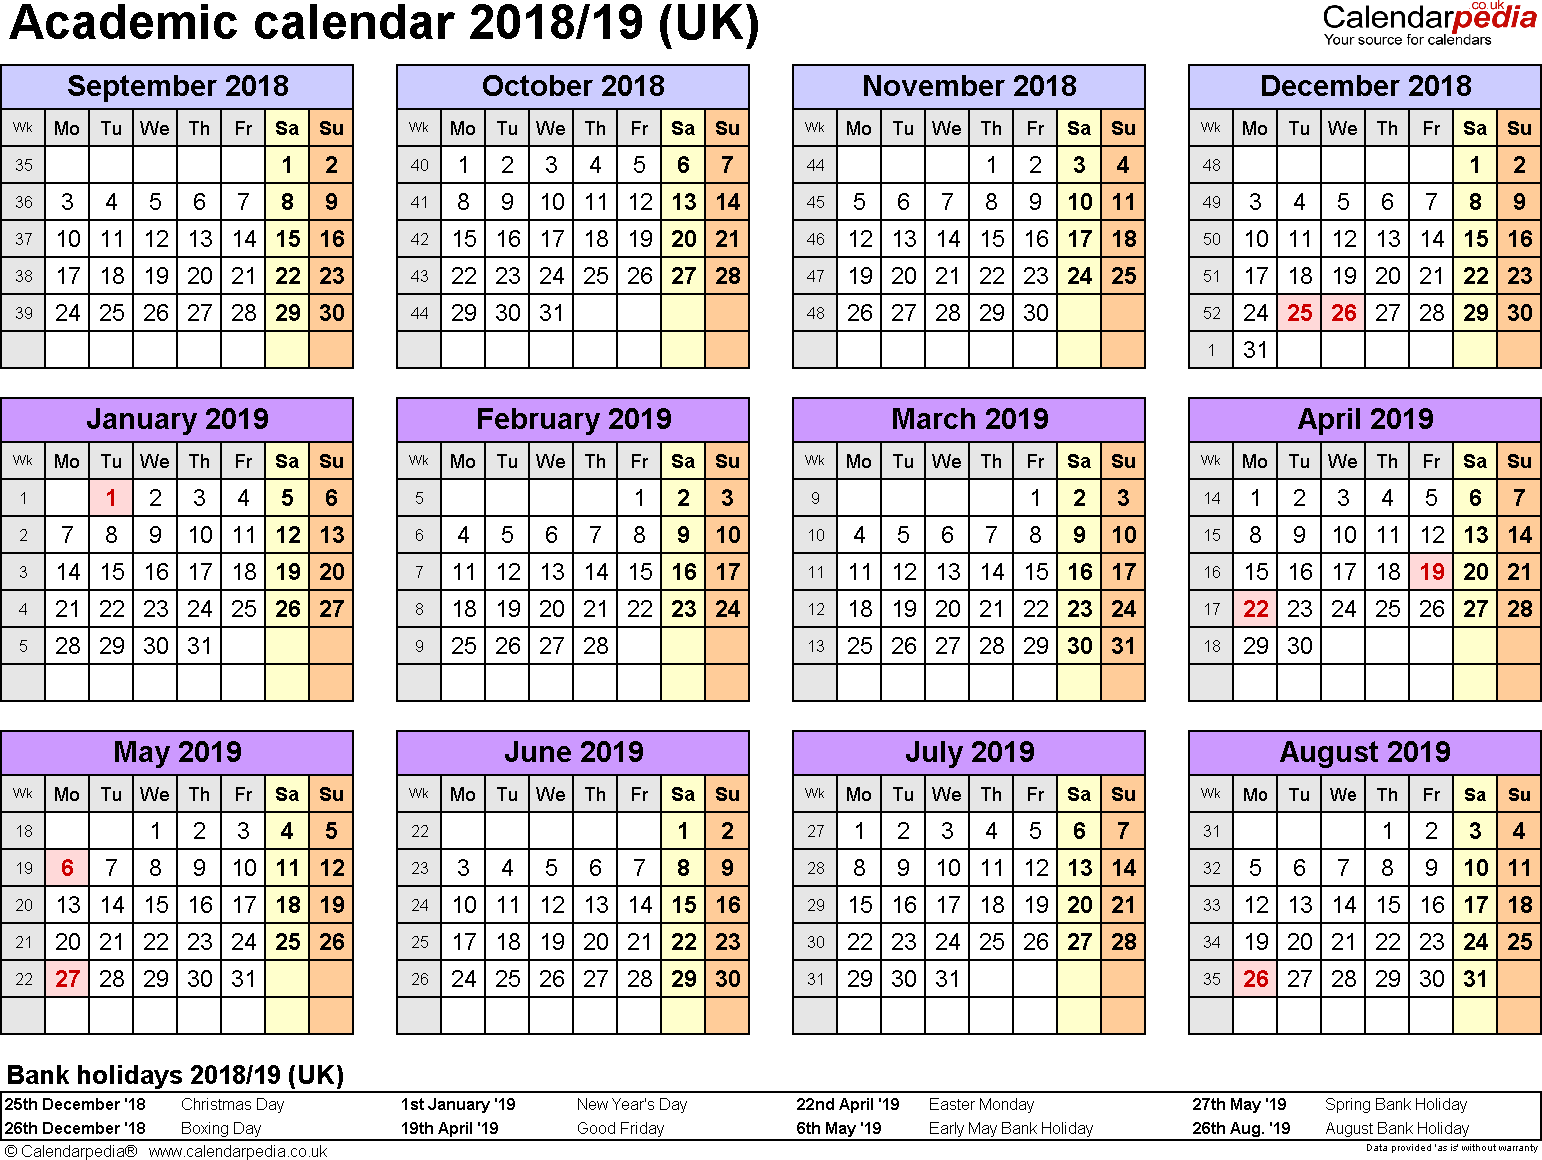 Template 4: Academic year calendars 2018/19 as Excel template, year overview, 1 page